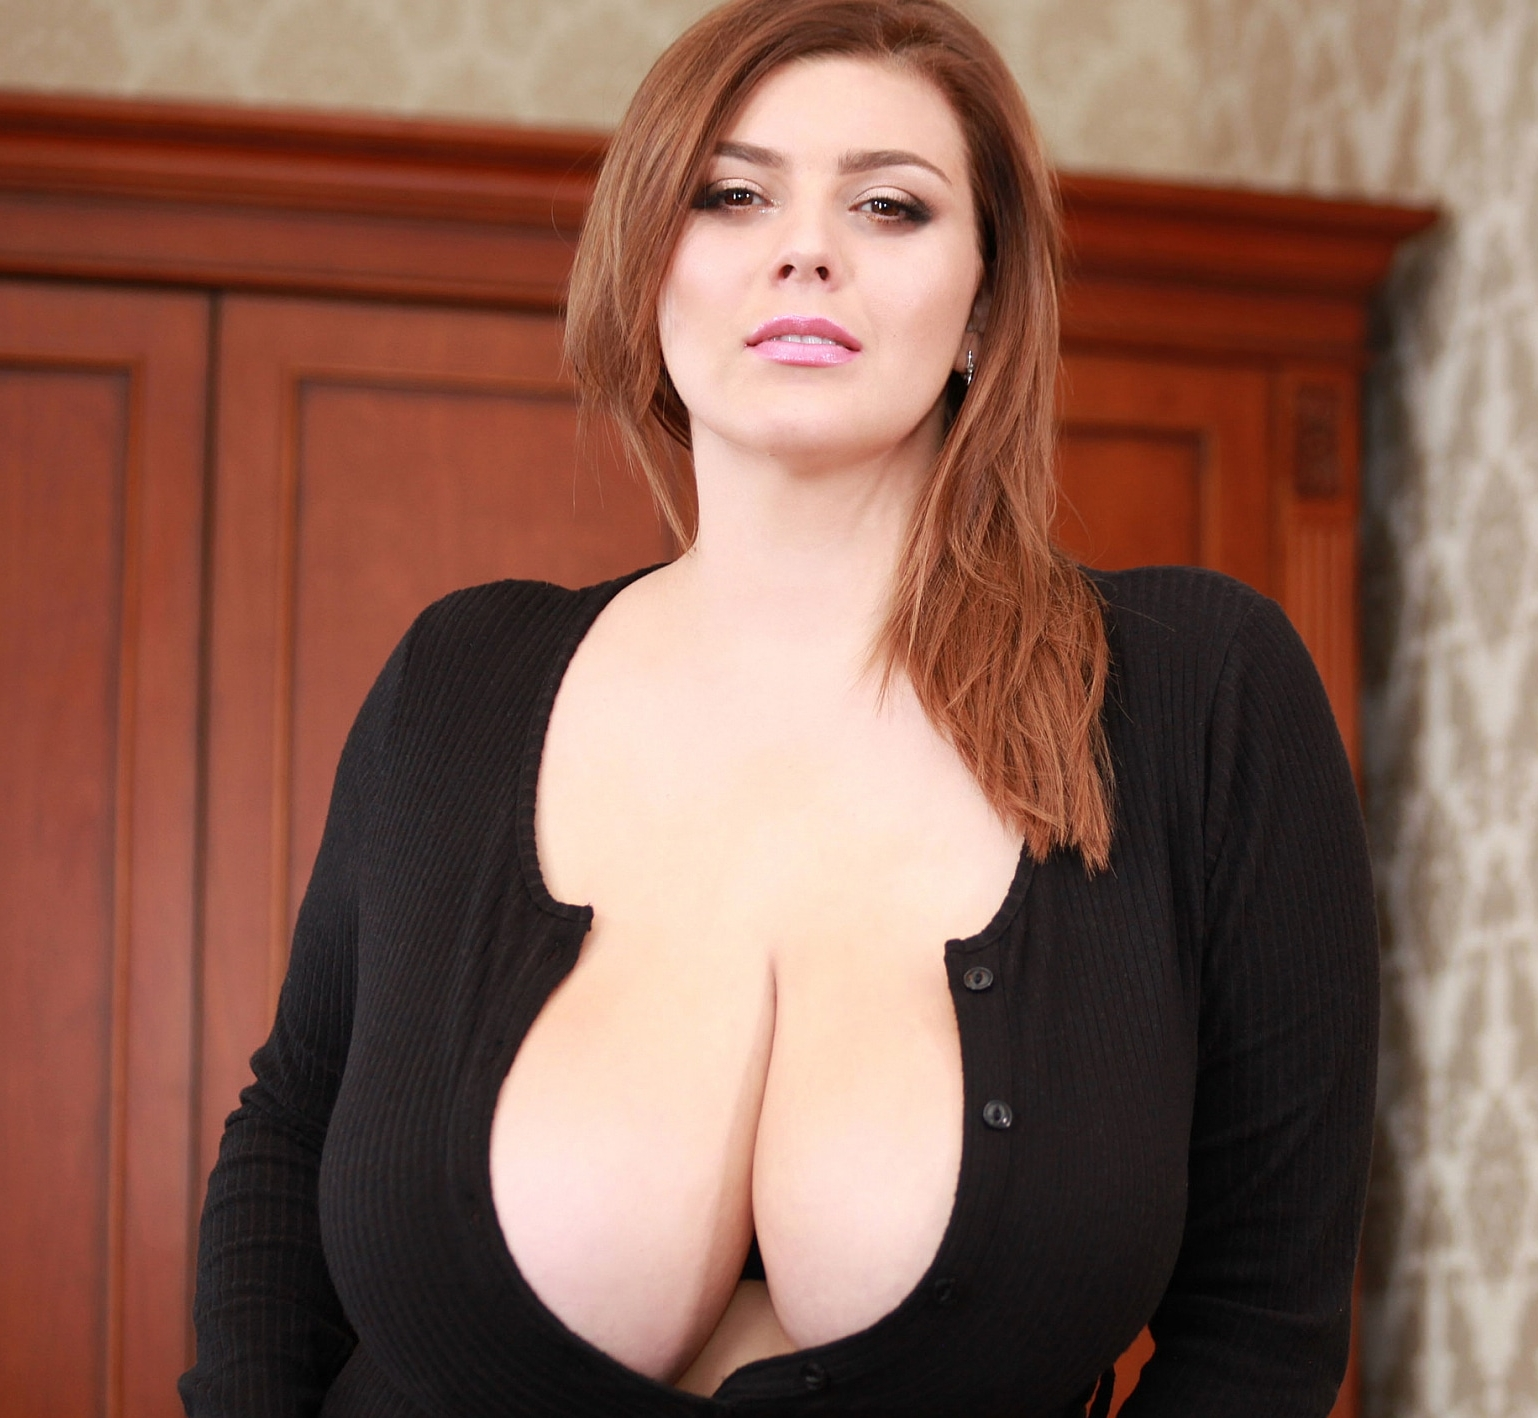 All About Anna Uncensored xenia wood only cleavage - curvy erotic